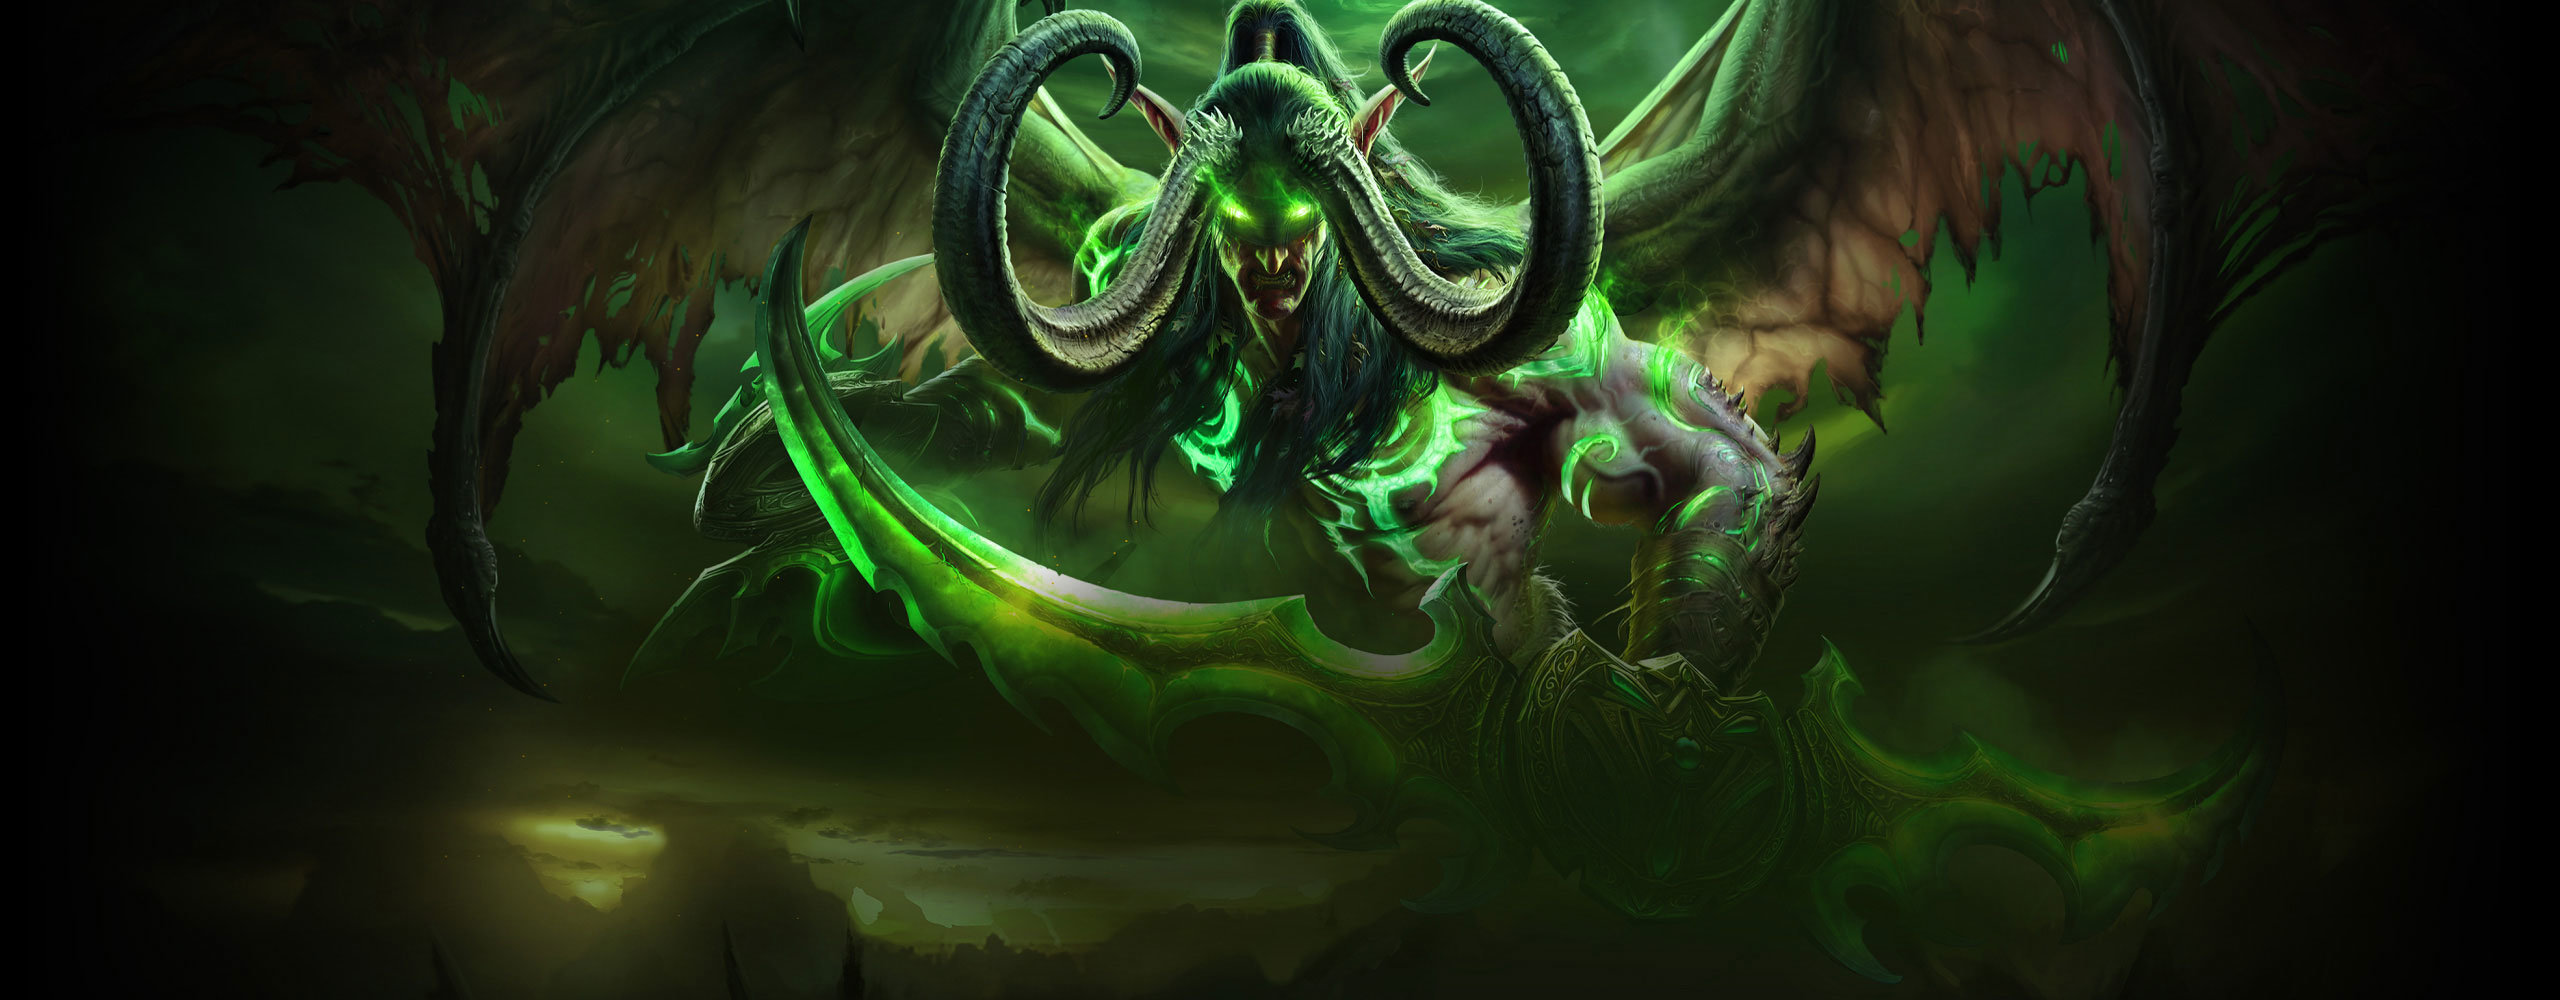 header-illidan-still.jpg